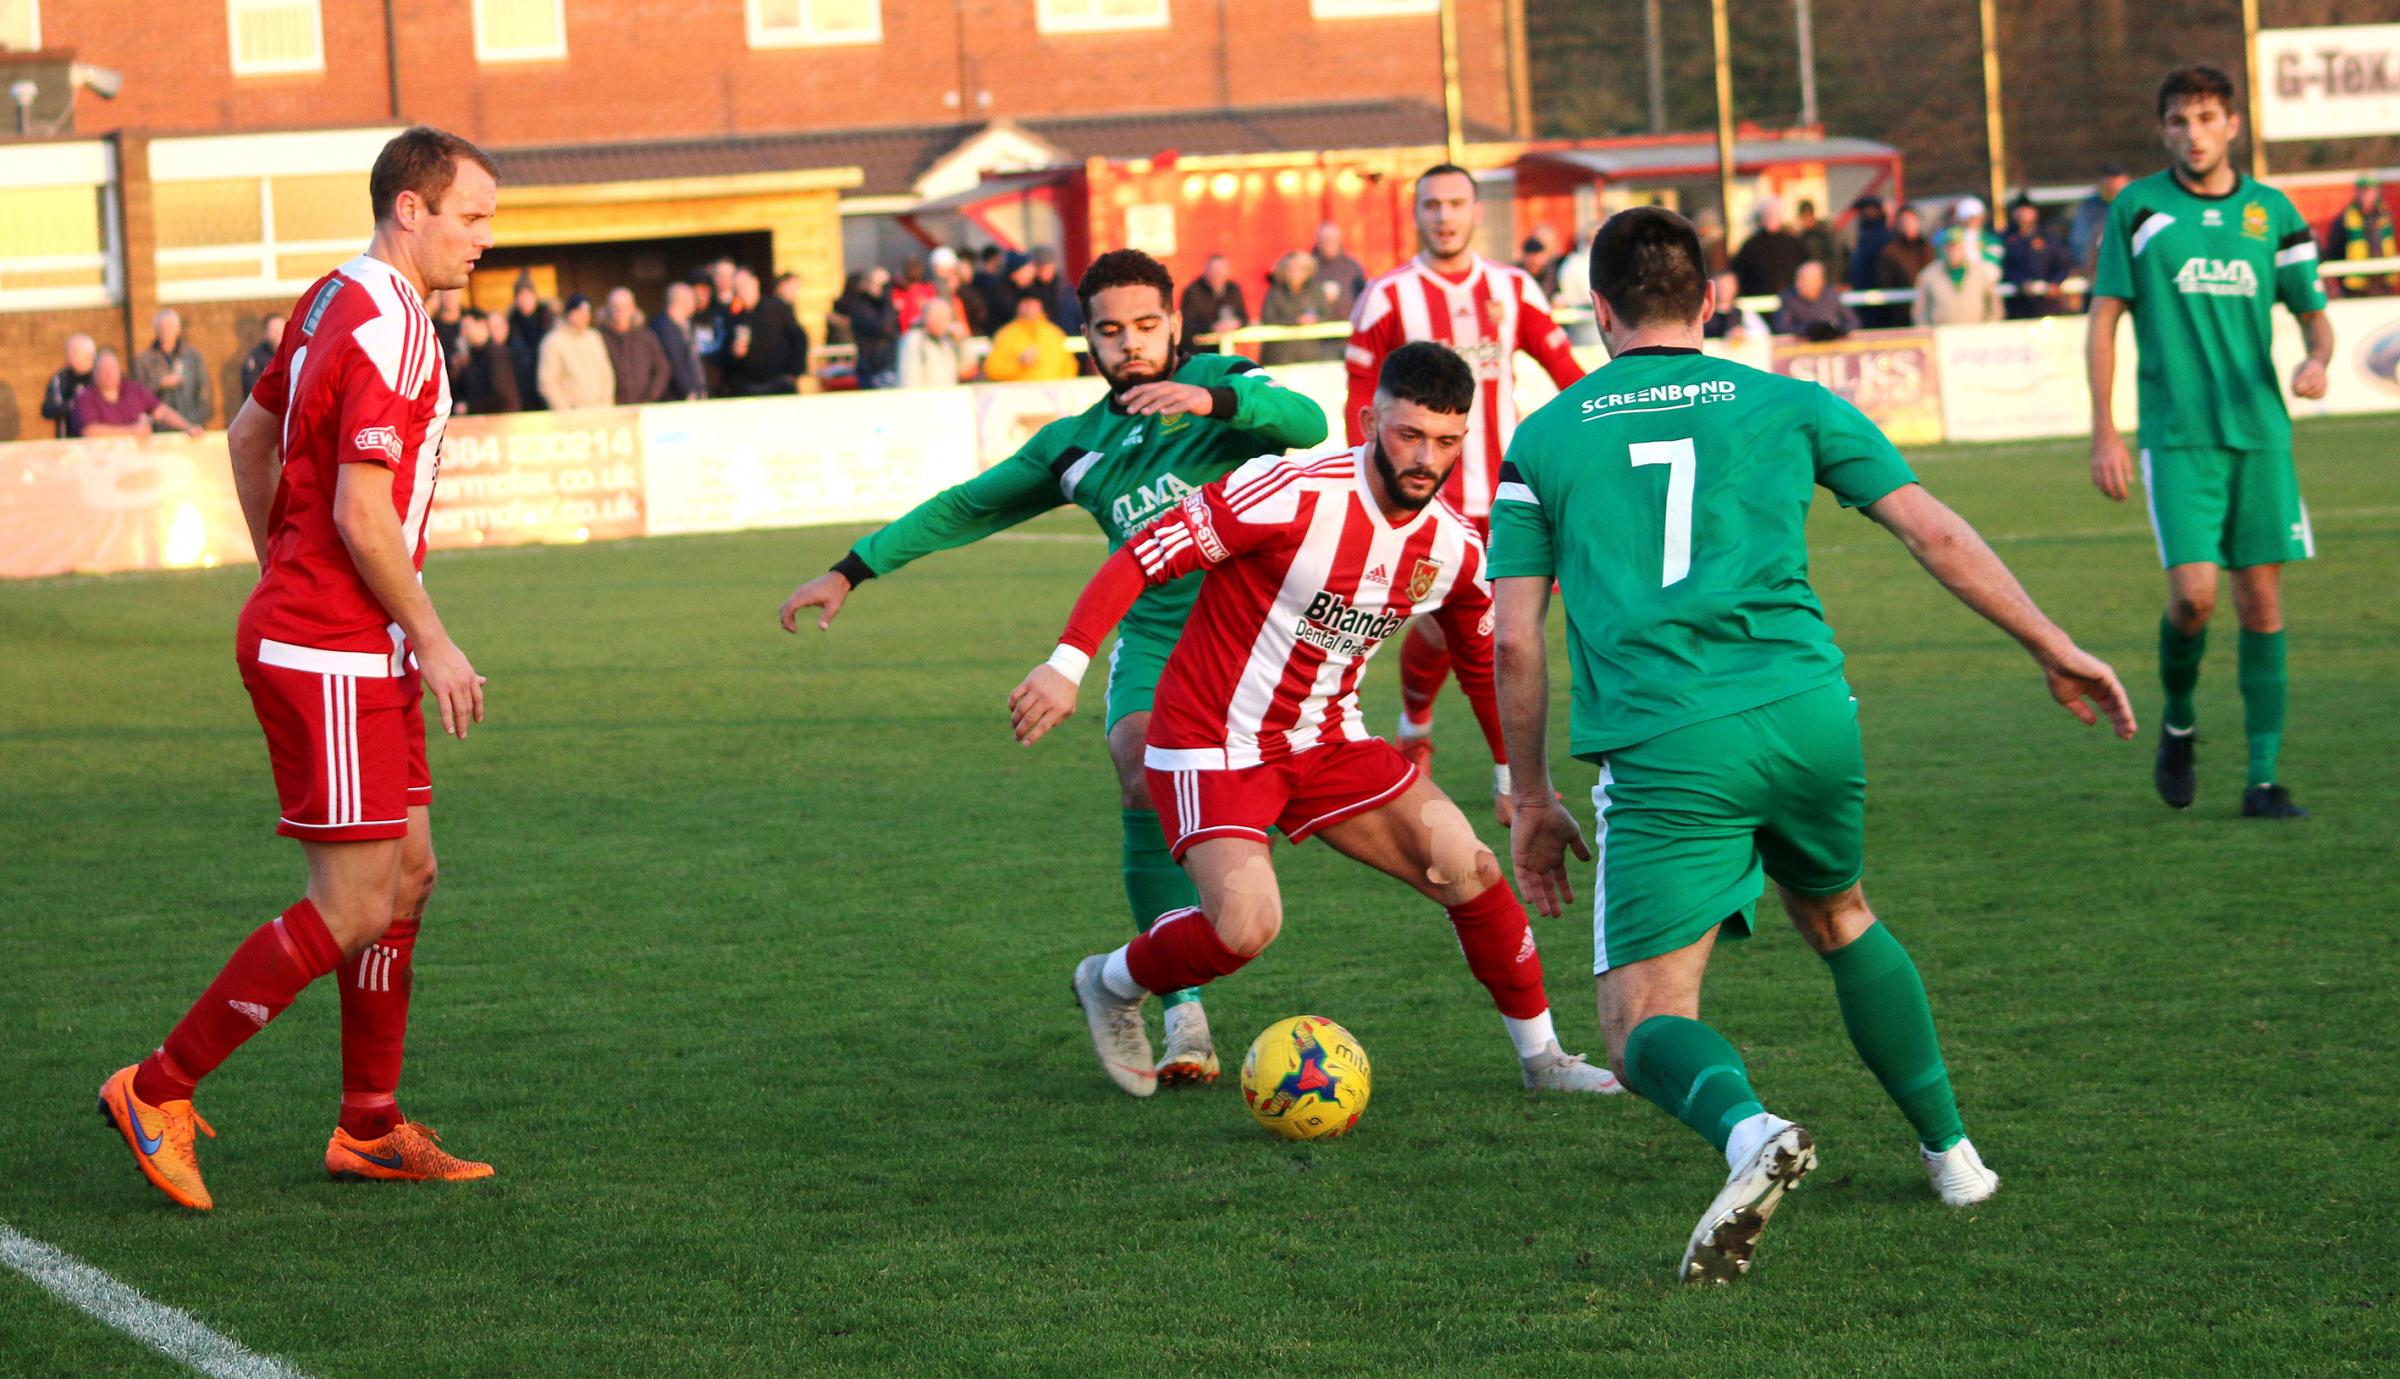 Callum Powell is due to return for Stourbridge this weekend